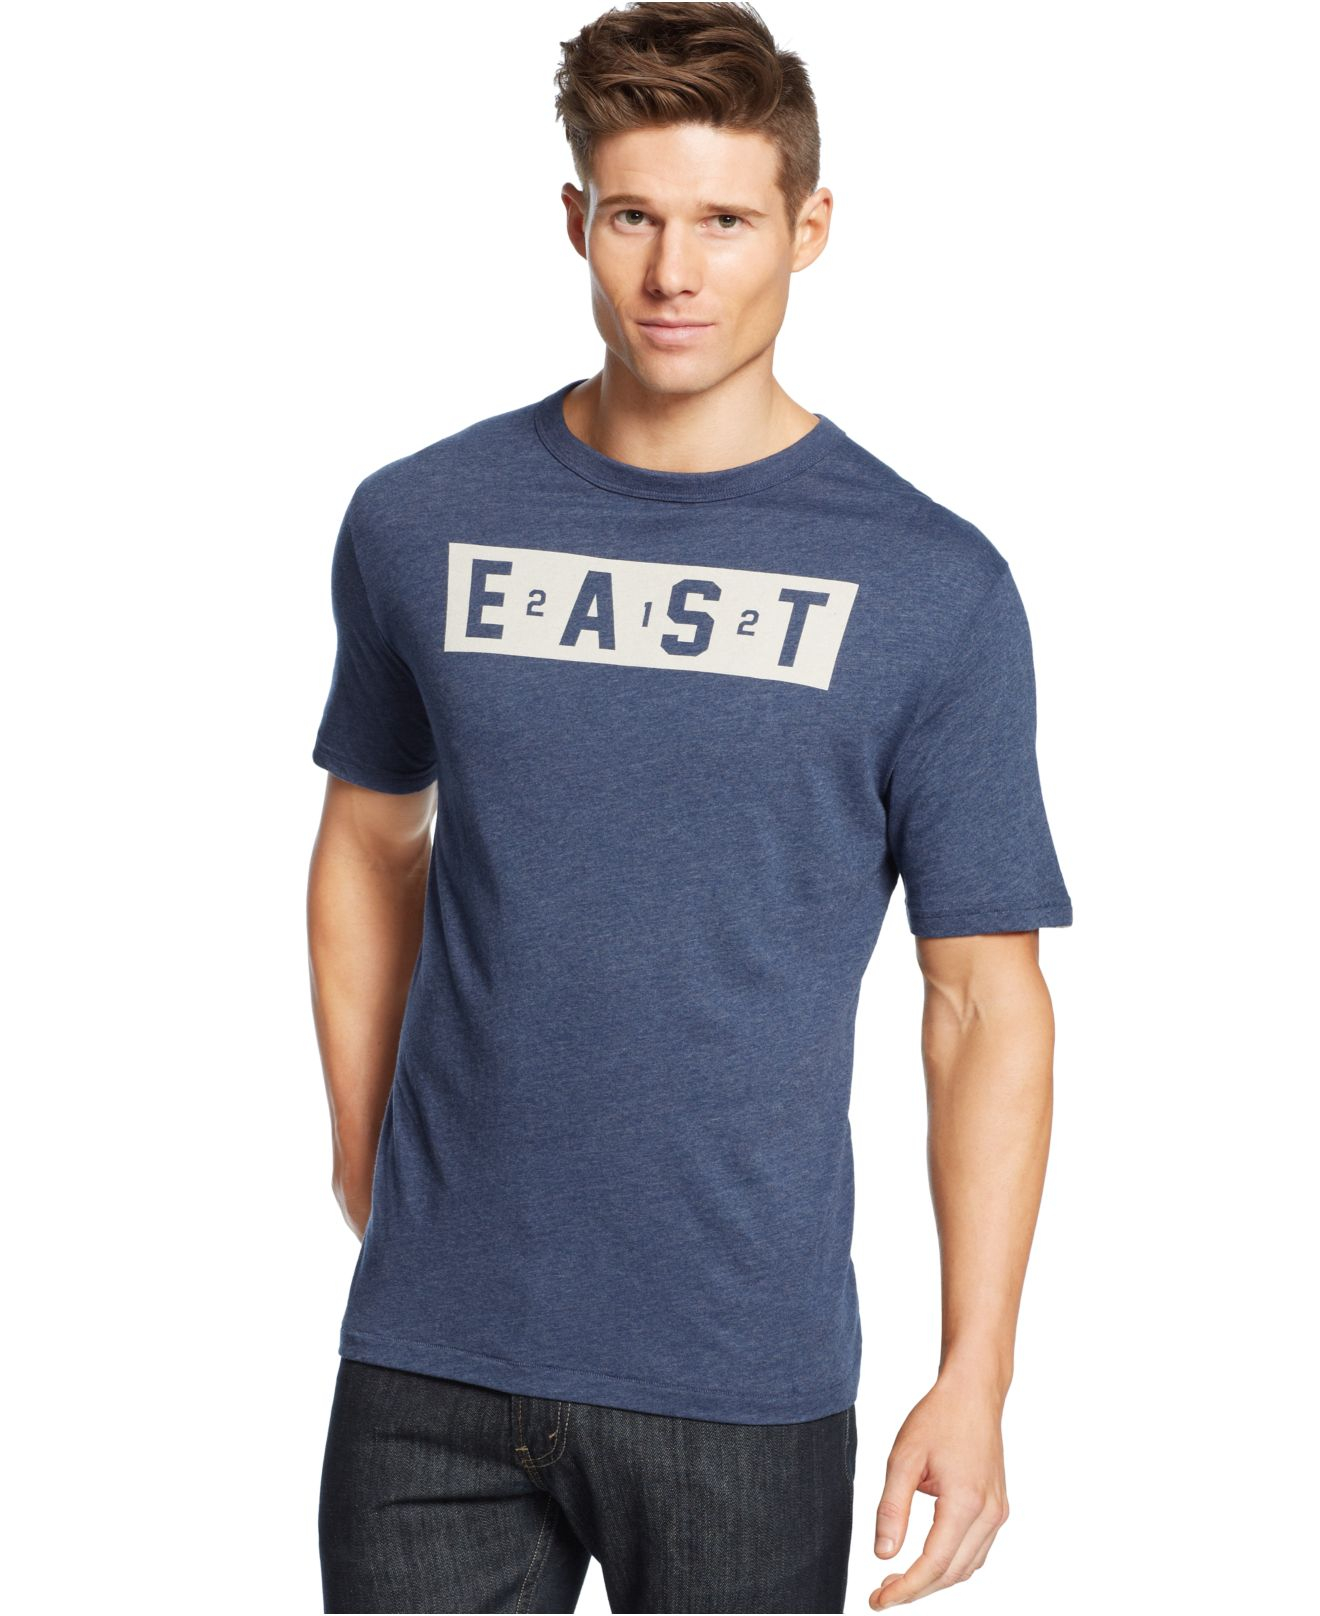 Under Armour East Graphic T Shirt In Blue For Men Lyst